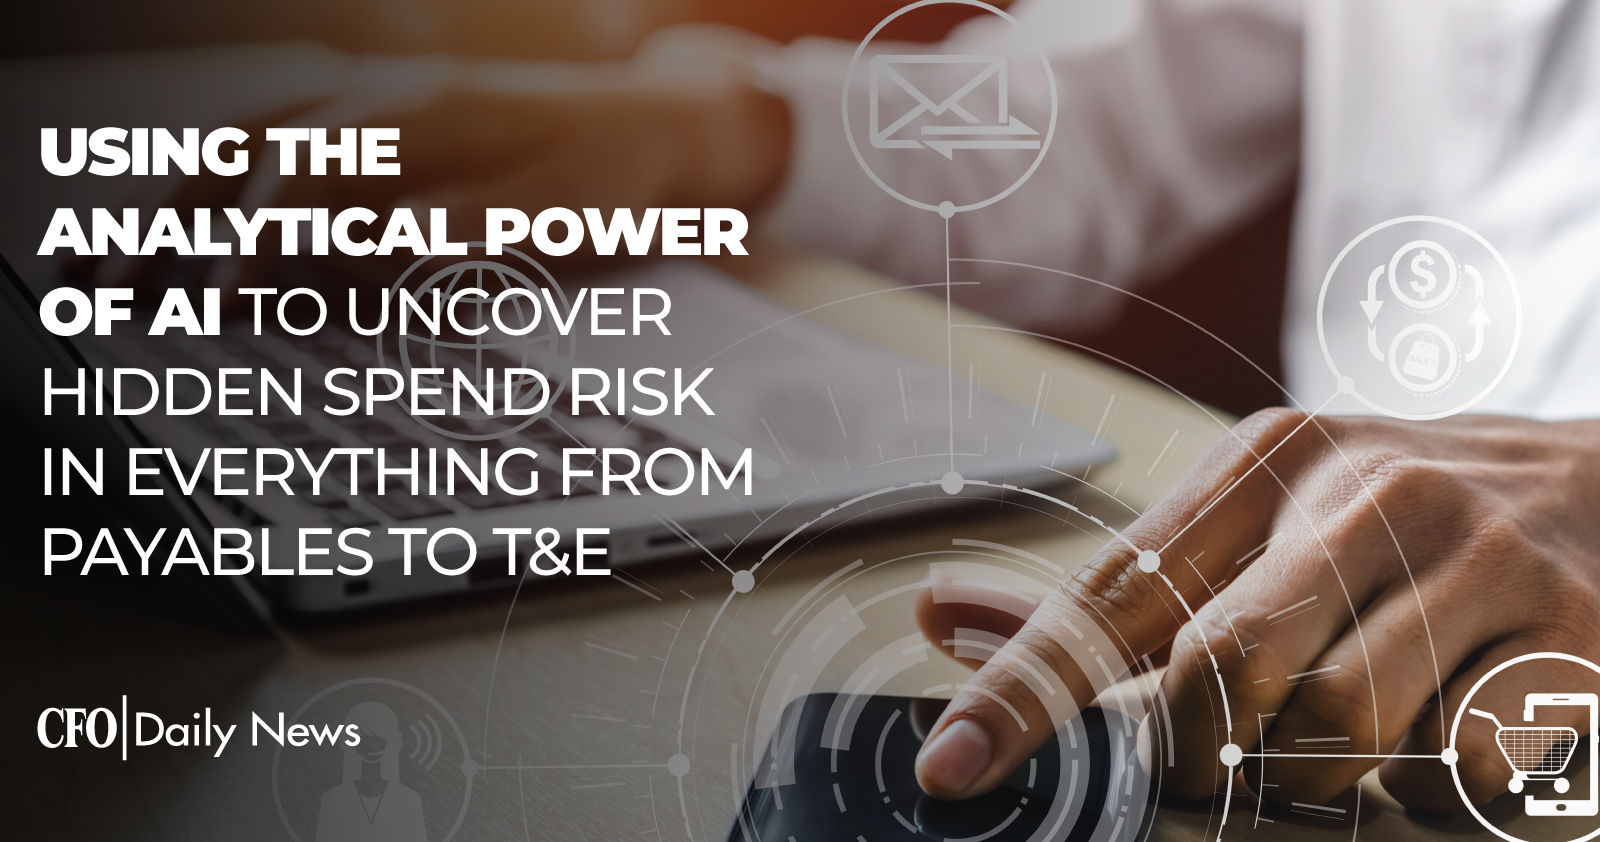 Using The Analytical Power Of AI To Uncover Hidden Spend Risk In Everything From Payables To T&E